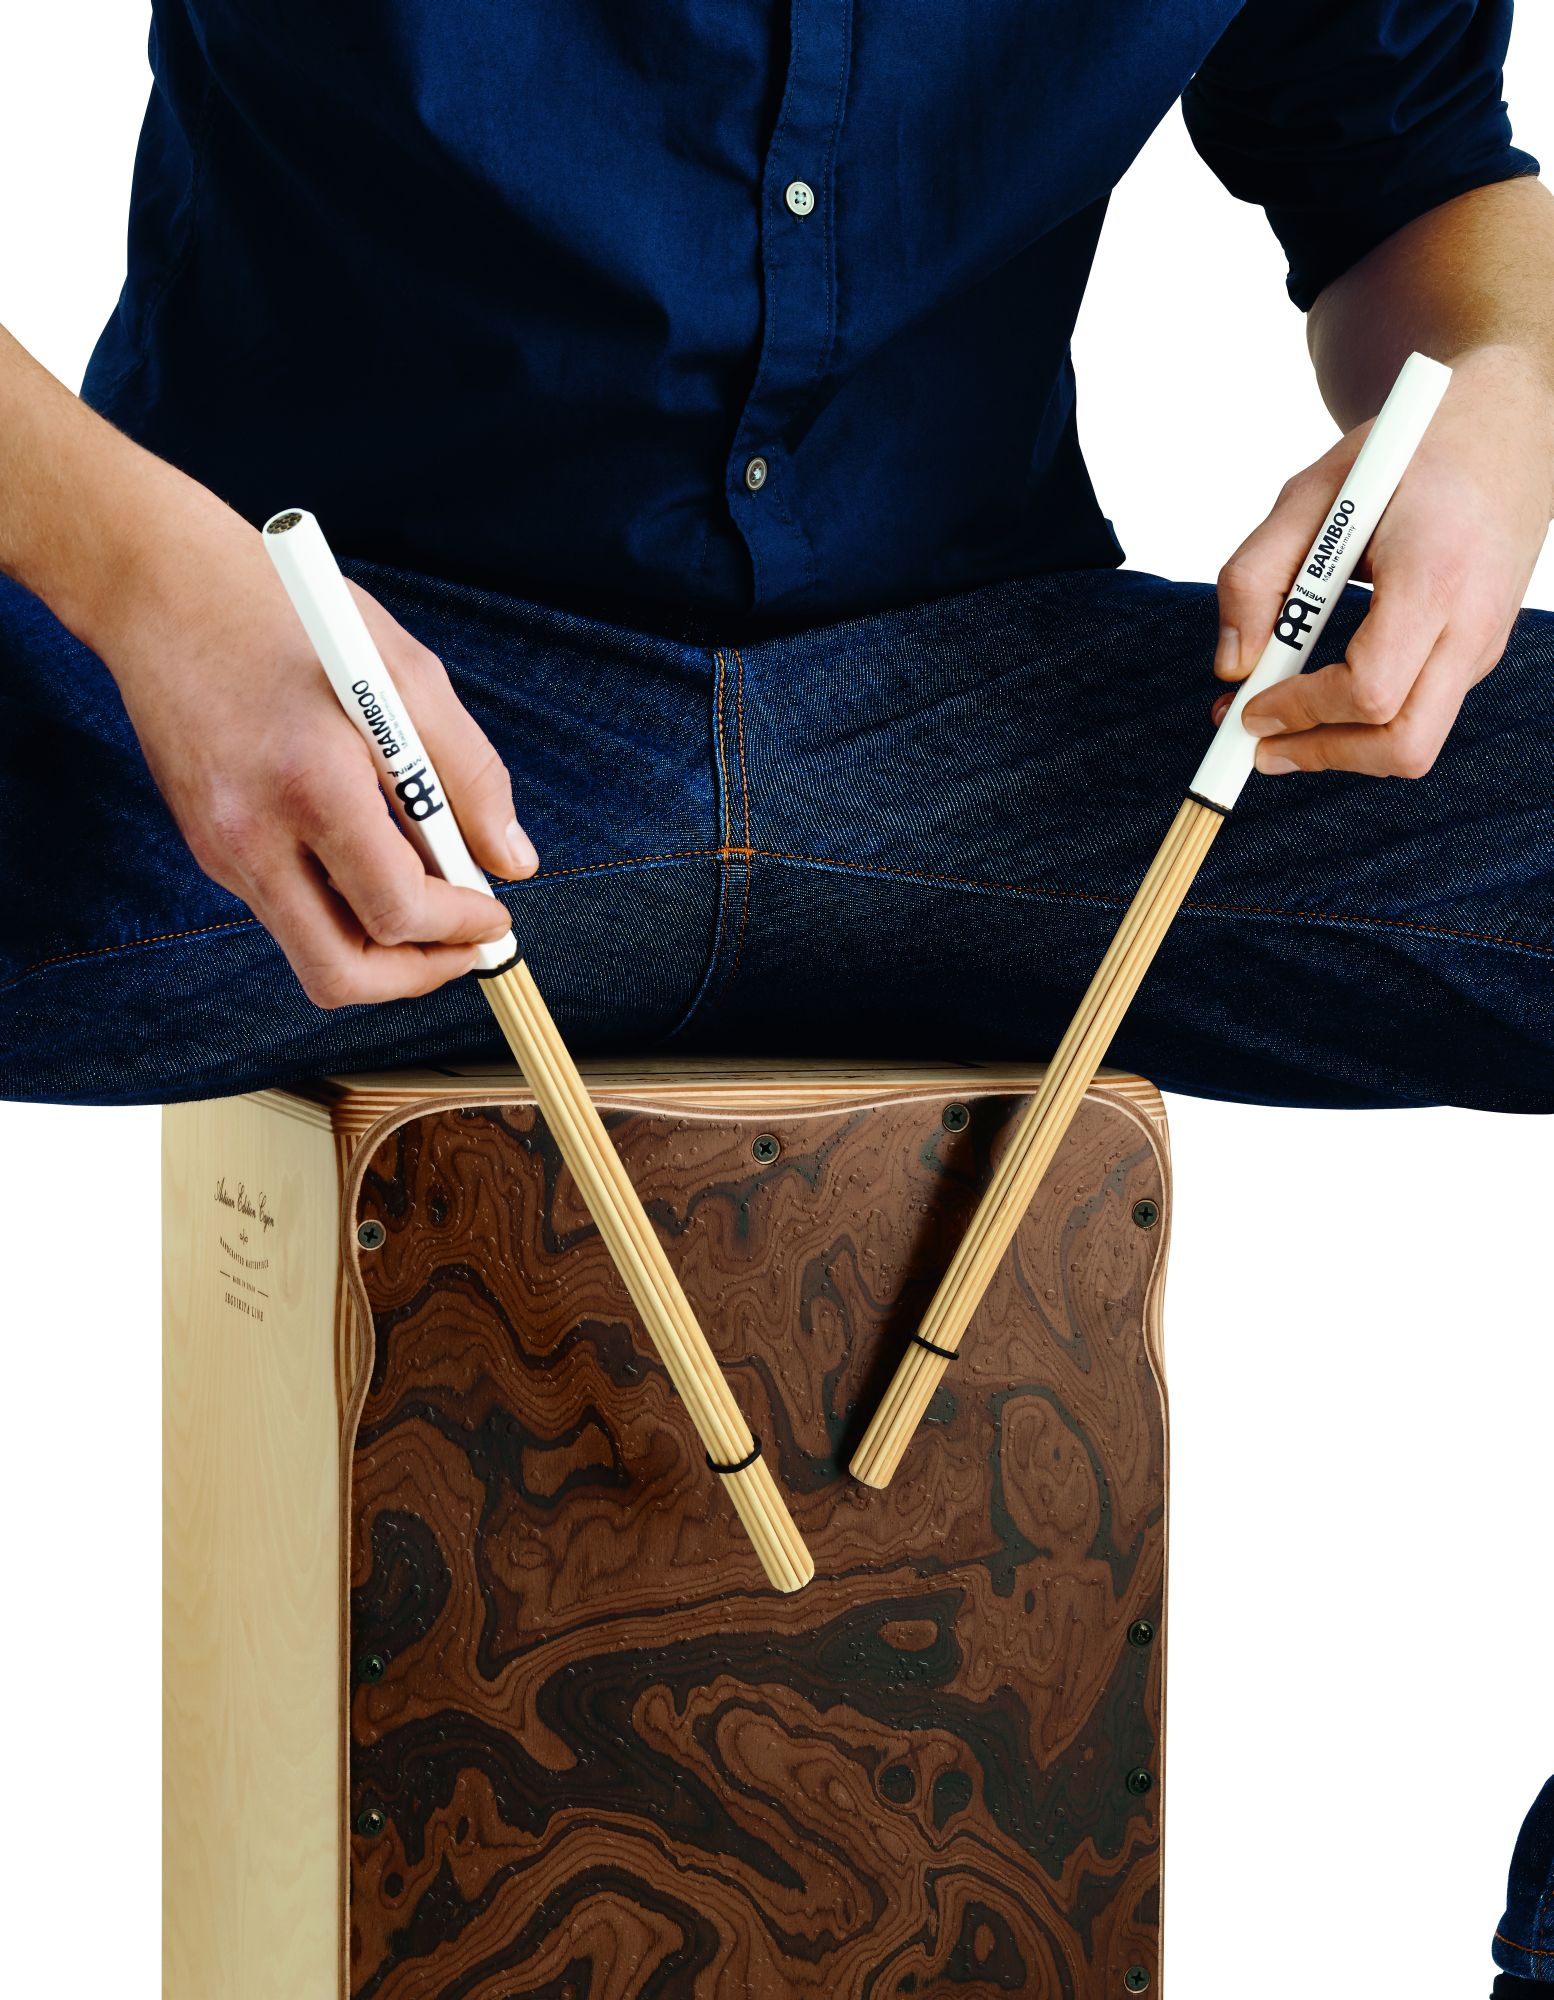 Showroom: Check Out Meinl's Bamboo Multi-Stick Collection!